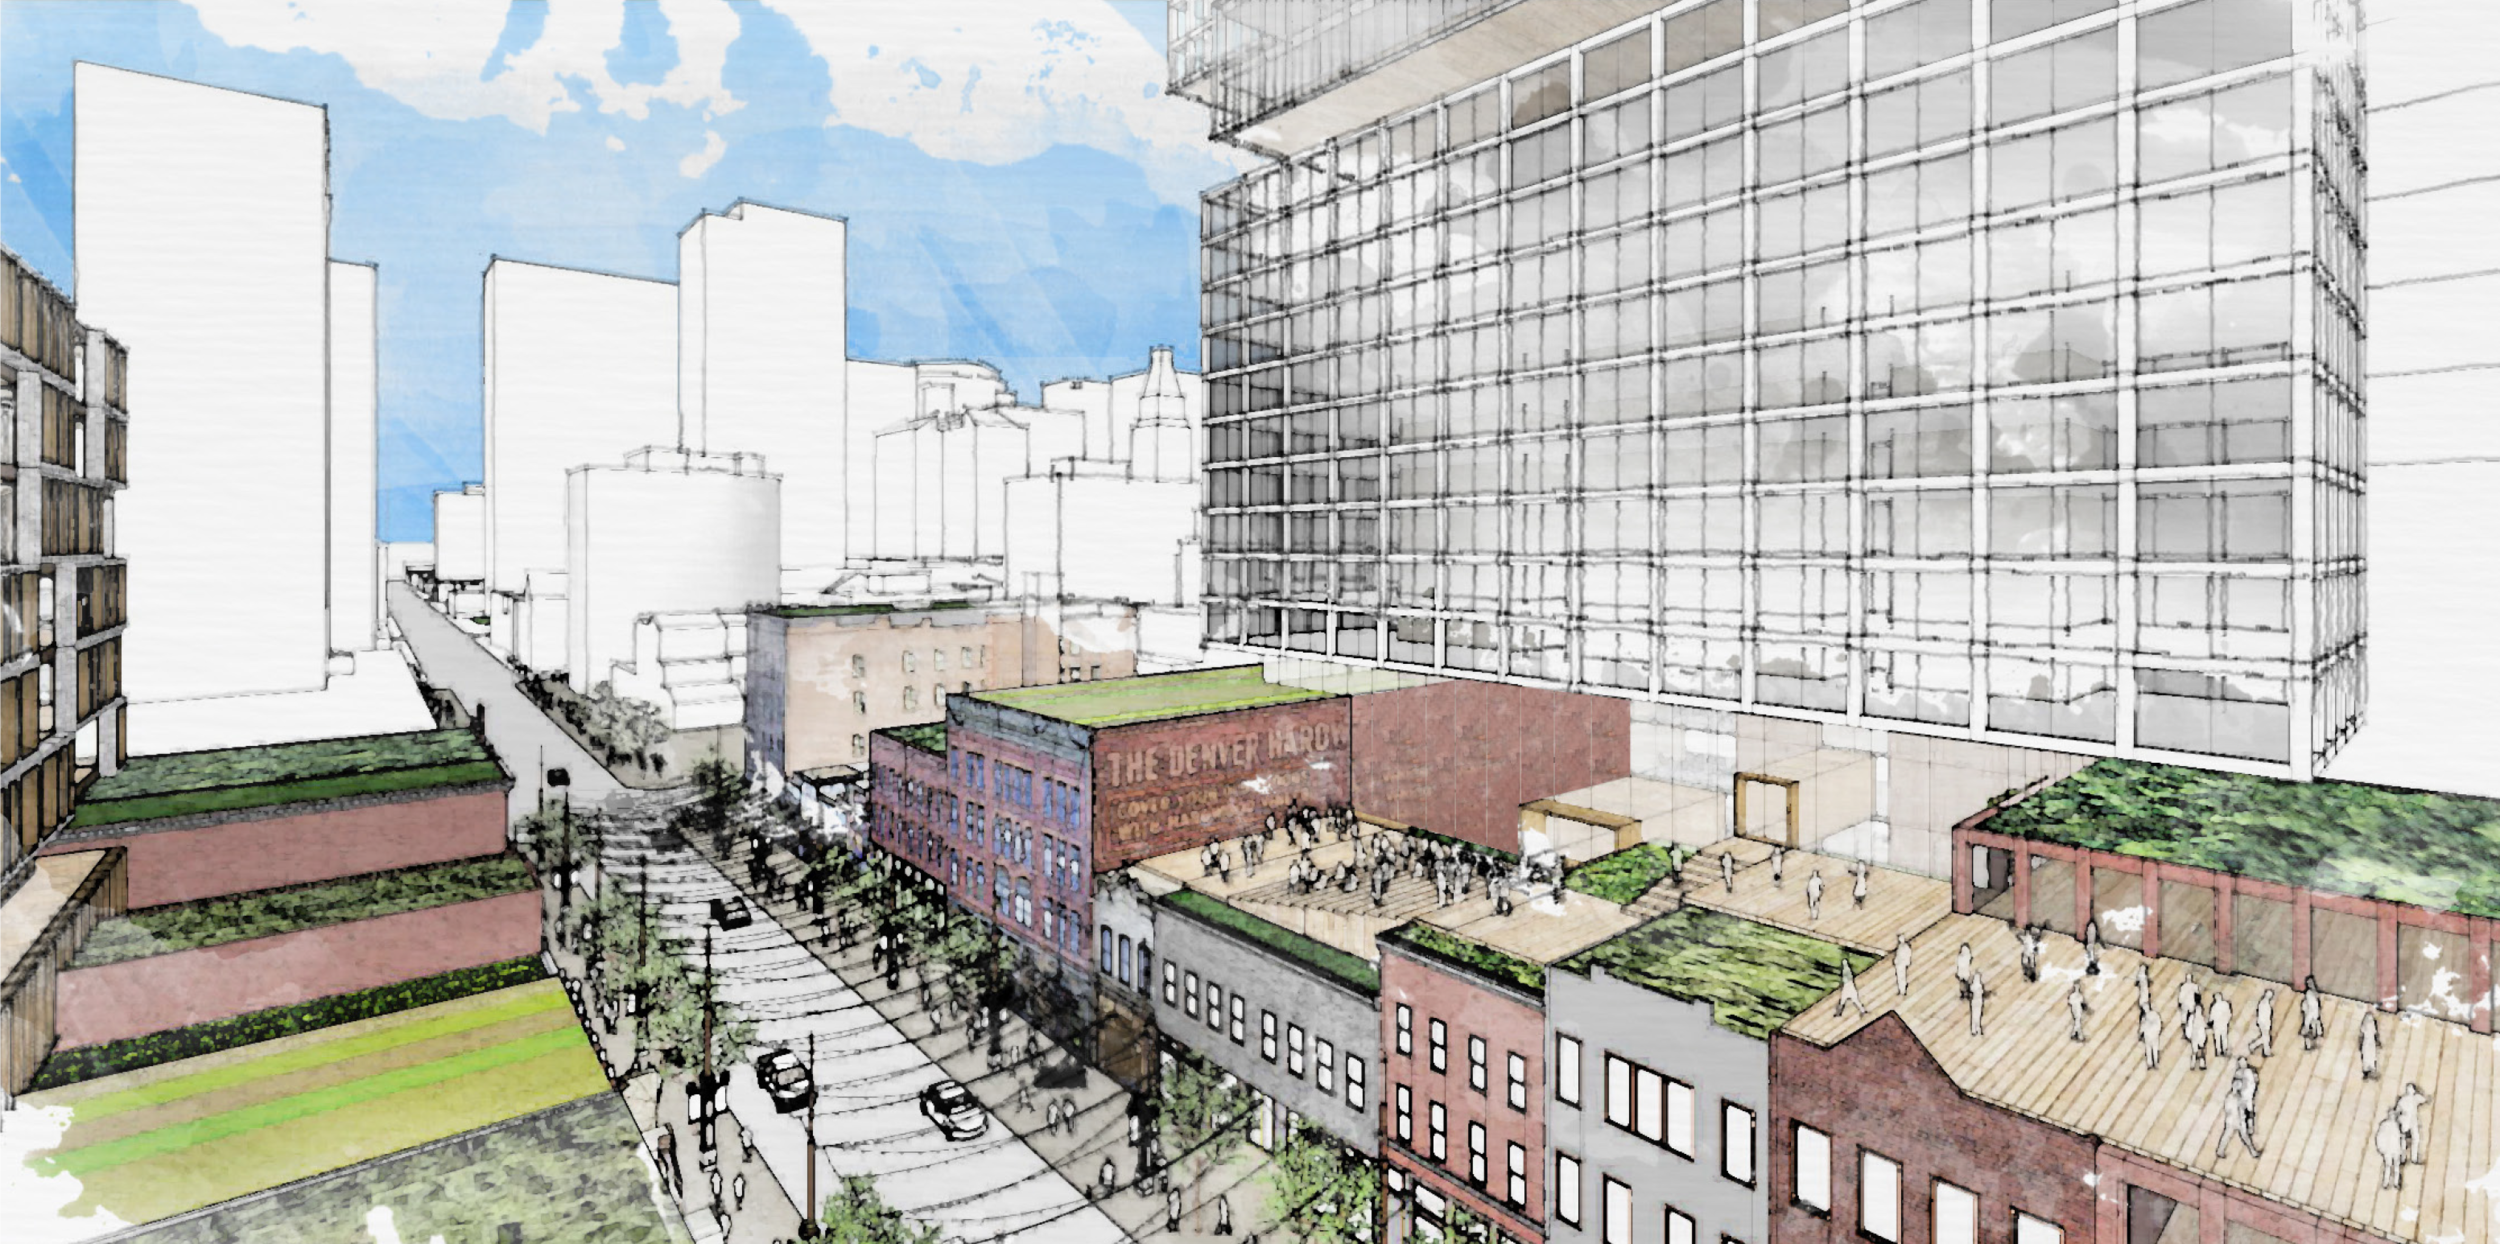 Overheard rendering of the future of Larimer Square shows extensive green spaces, urban gardens and farms.